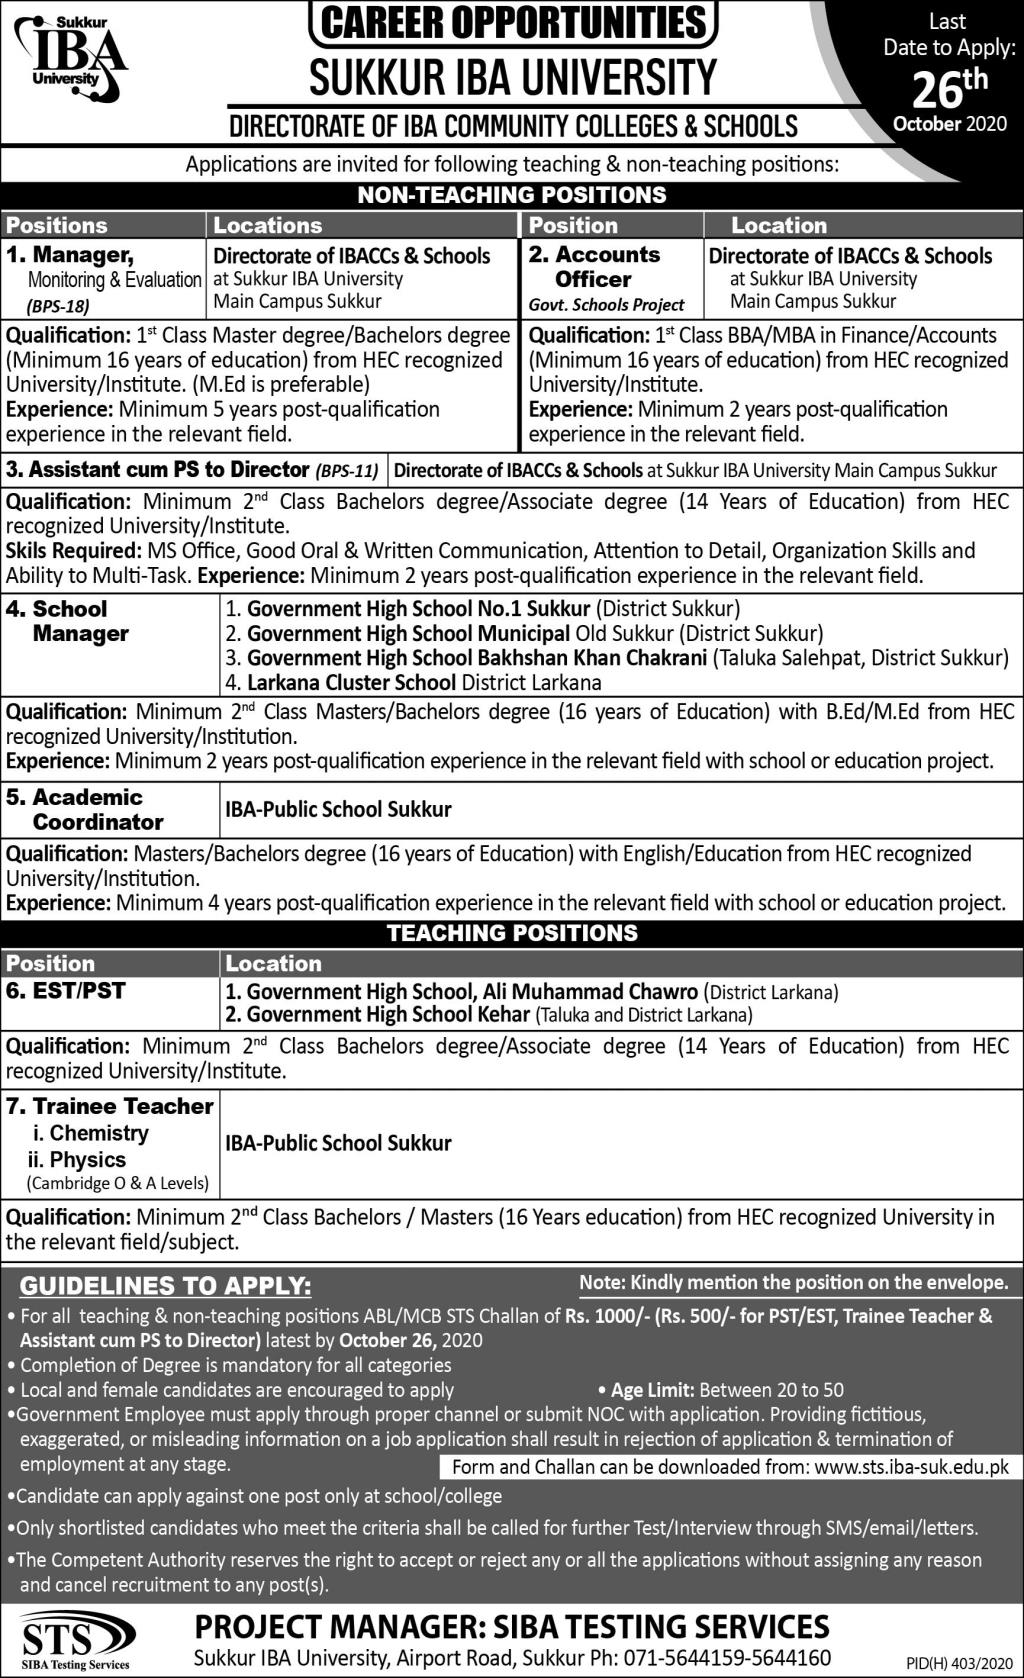 Sukkur IBA University Latest Jobs Advertisement in Pakistan - Apply Now - www.sts.iba-suk.edu.pk